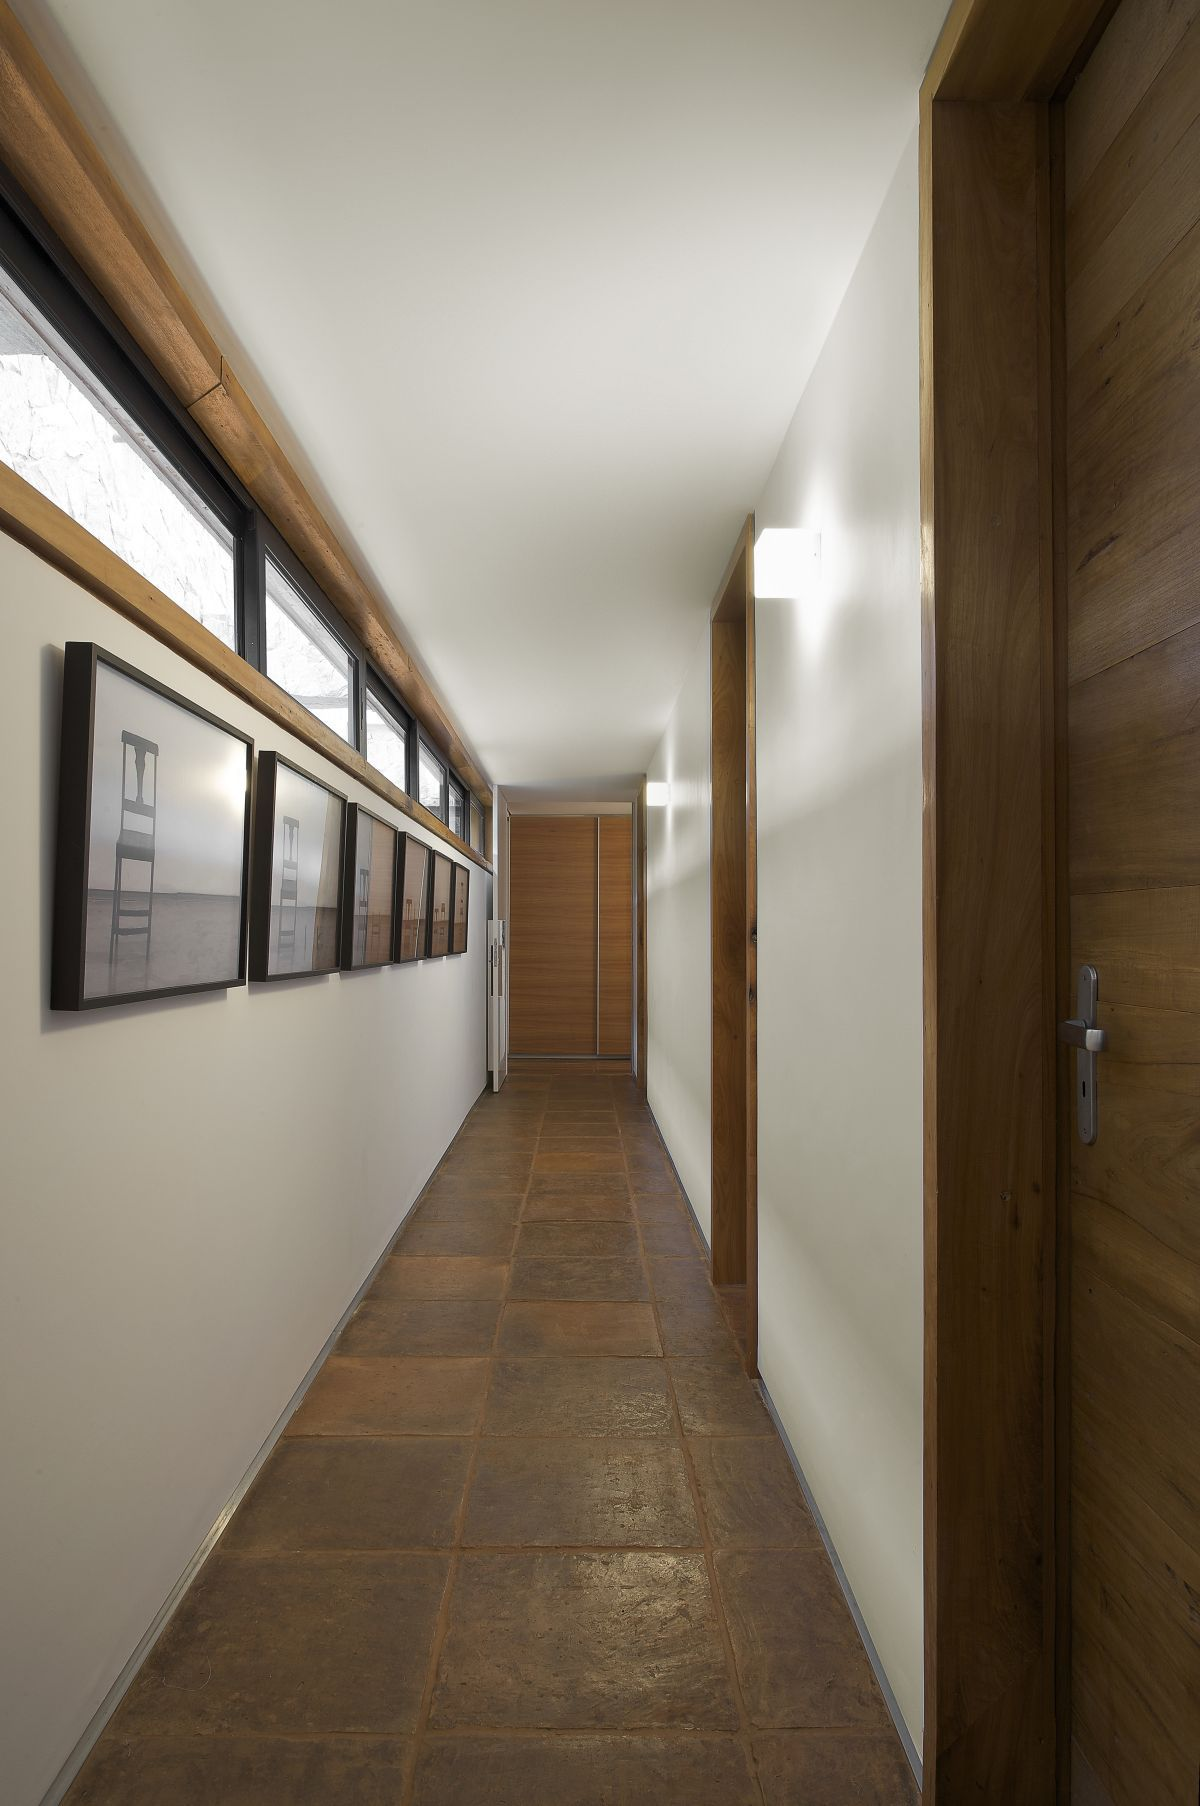 Home Design Jobs Love The Floor Outdoors Hallway Designs Modern Wood Floors